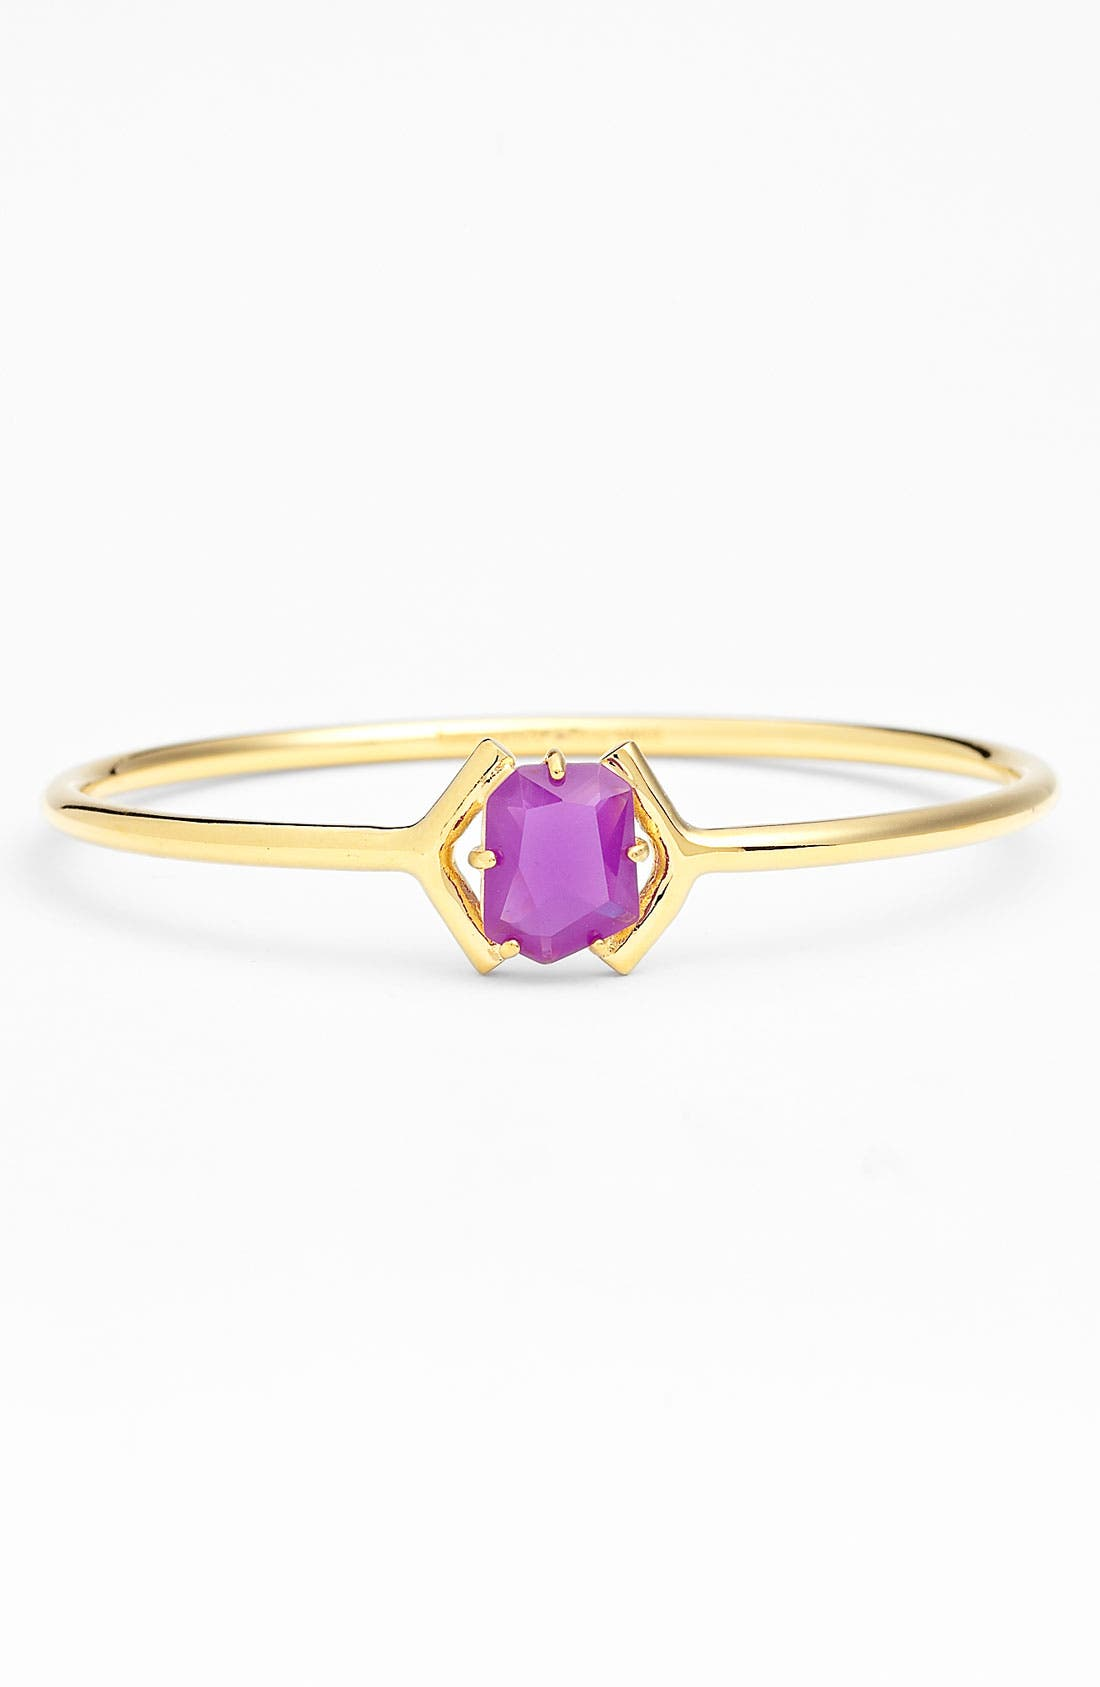 Alternate Image 1 Selected - kate spade new york colored stone bangle (Nordstrom Exclusive)